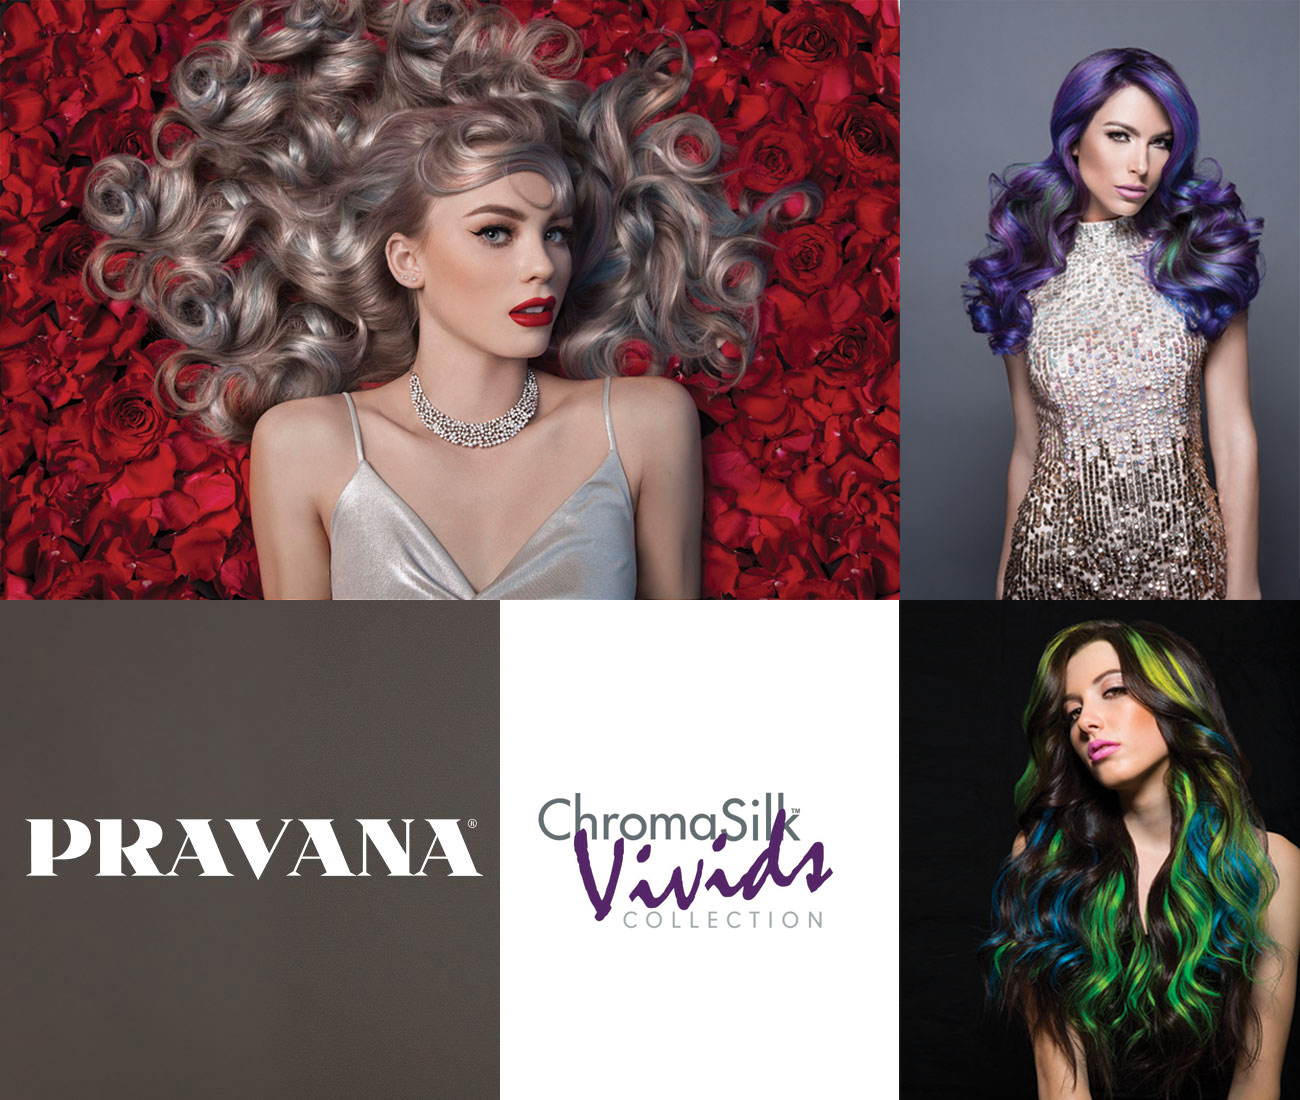 Prevana Hair Products